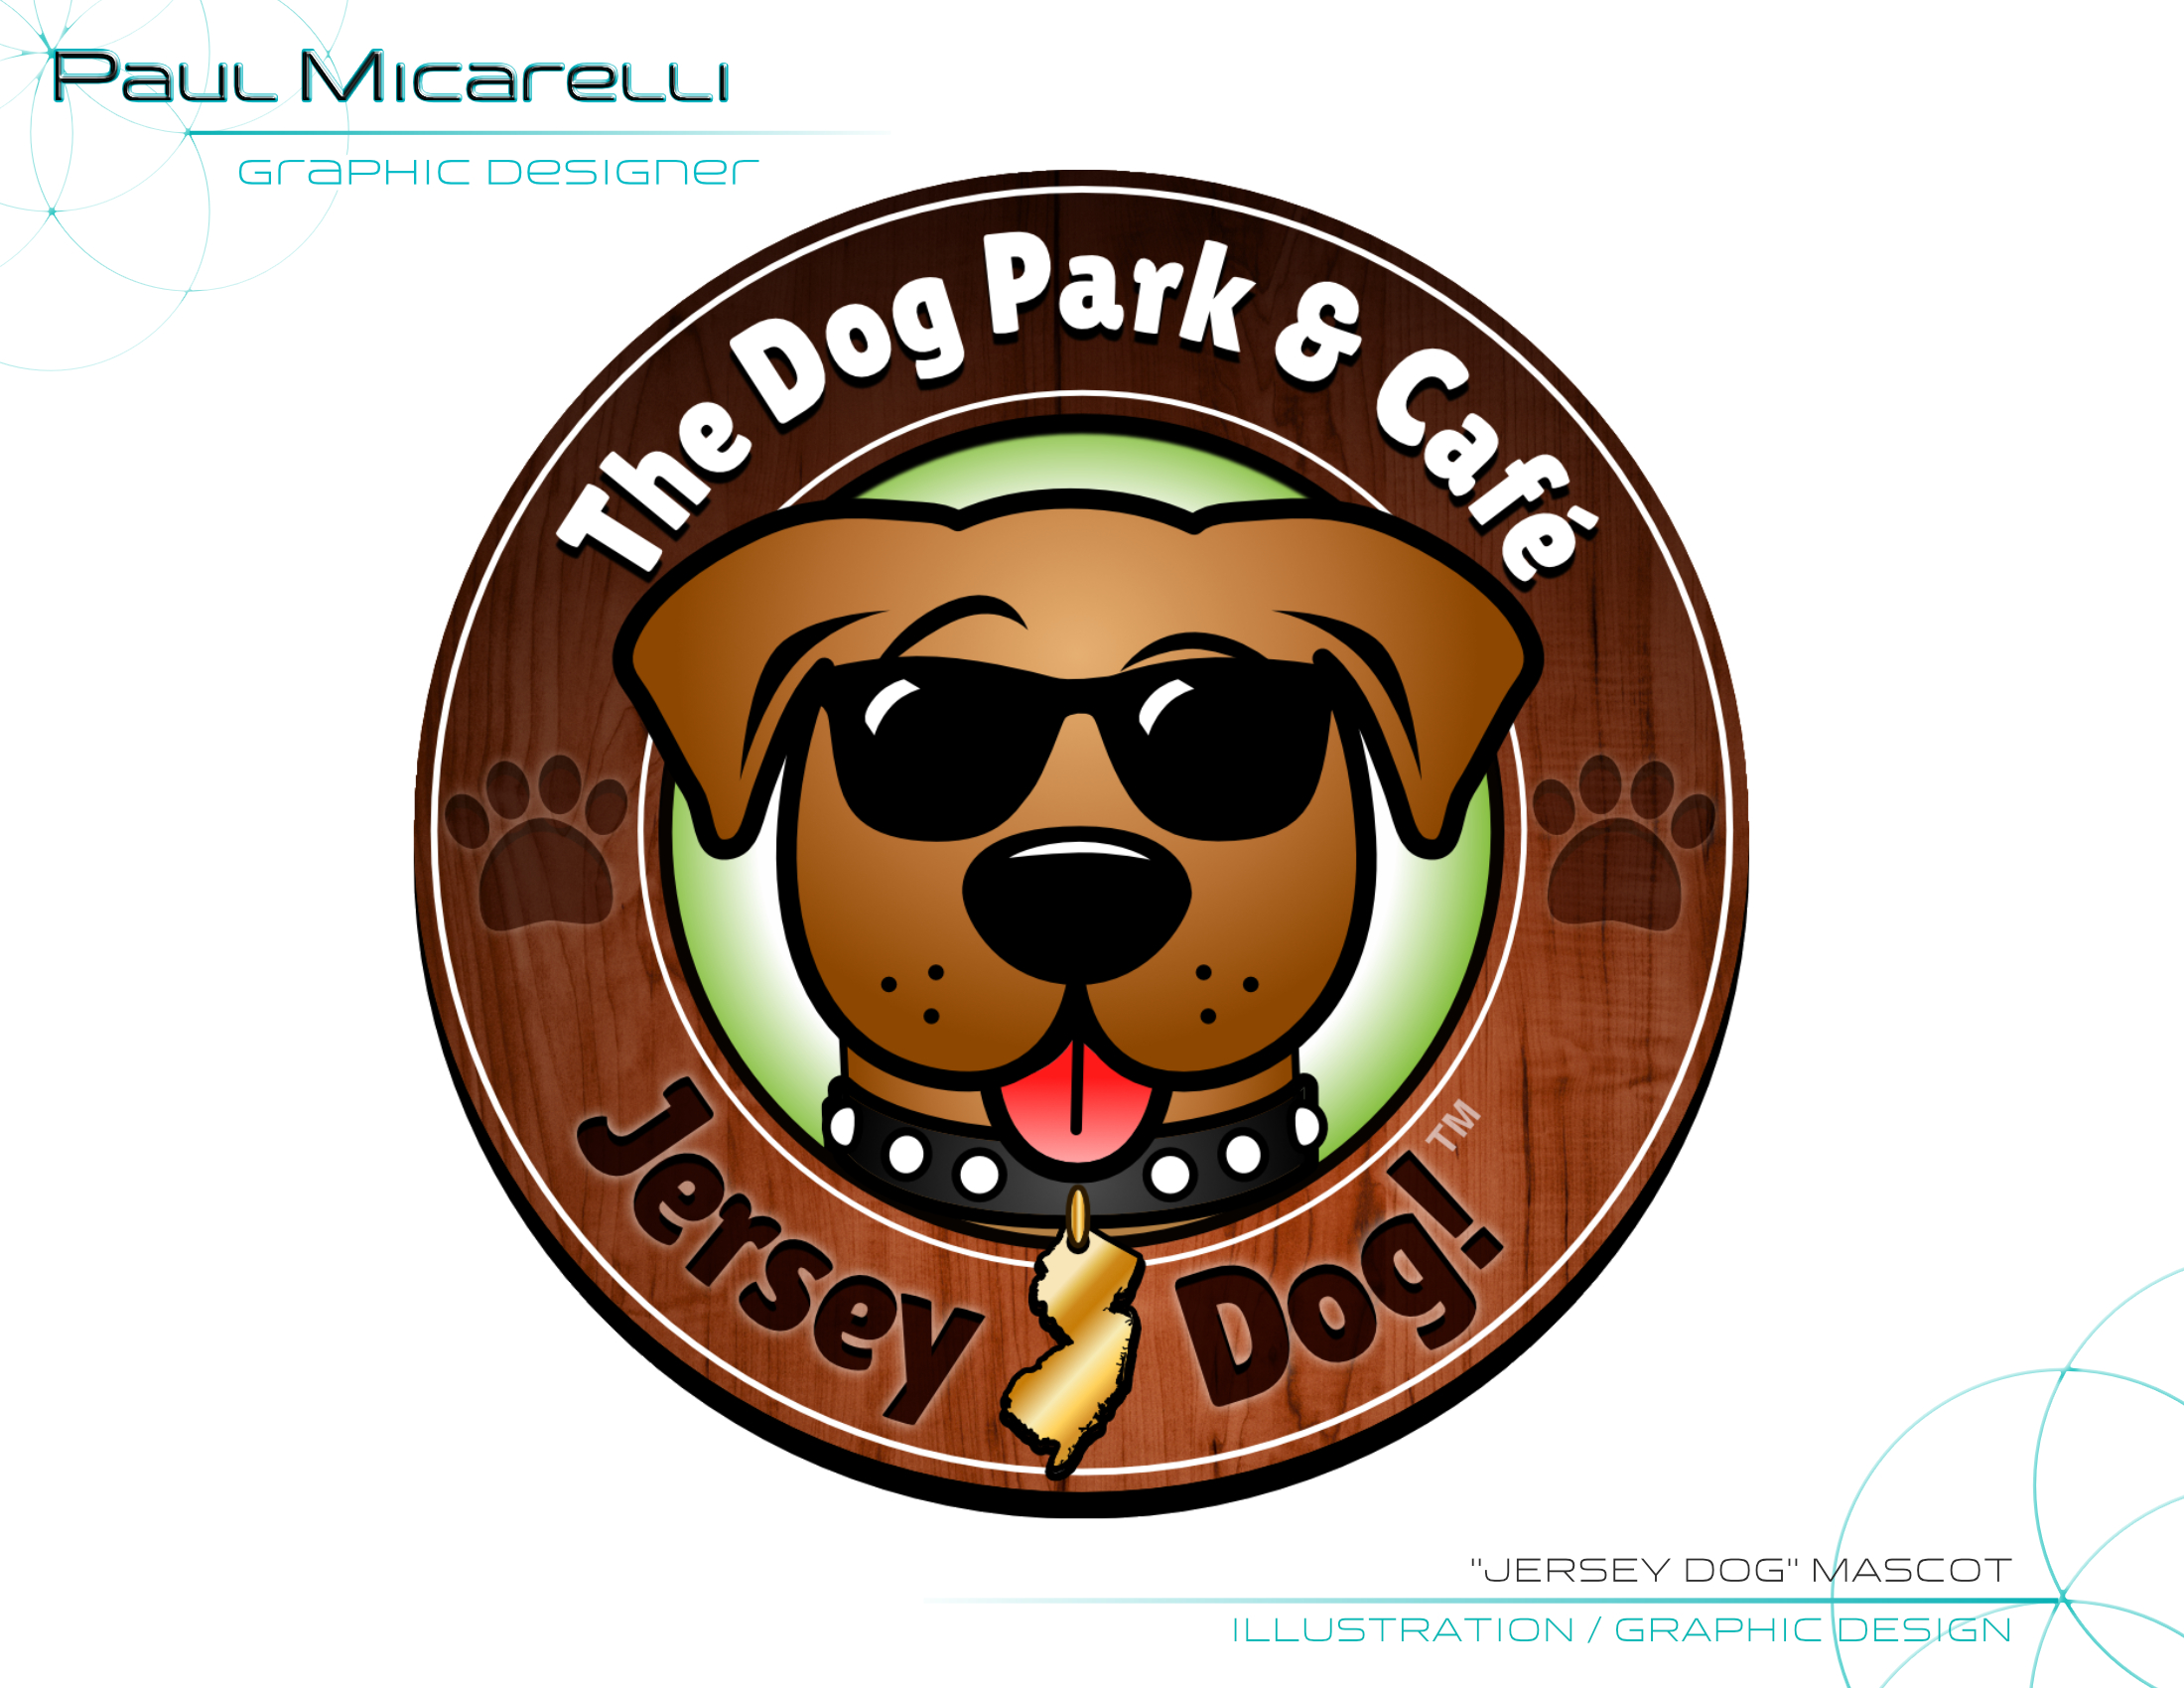 Paul-Micarelli-Jersey Dog